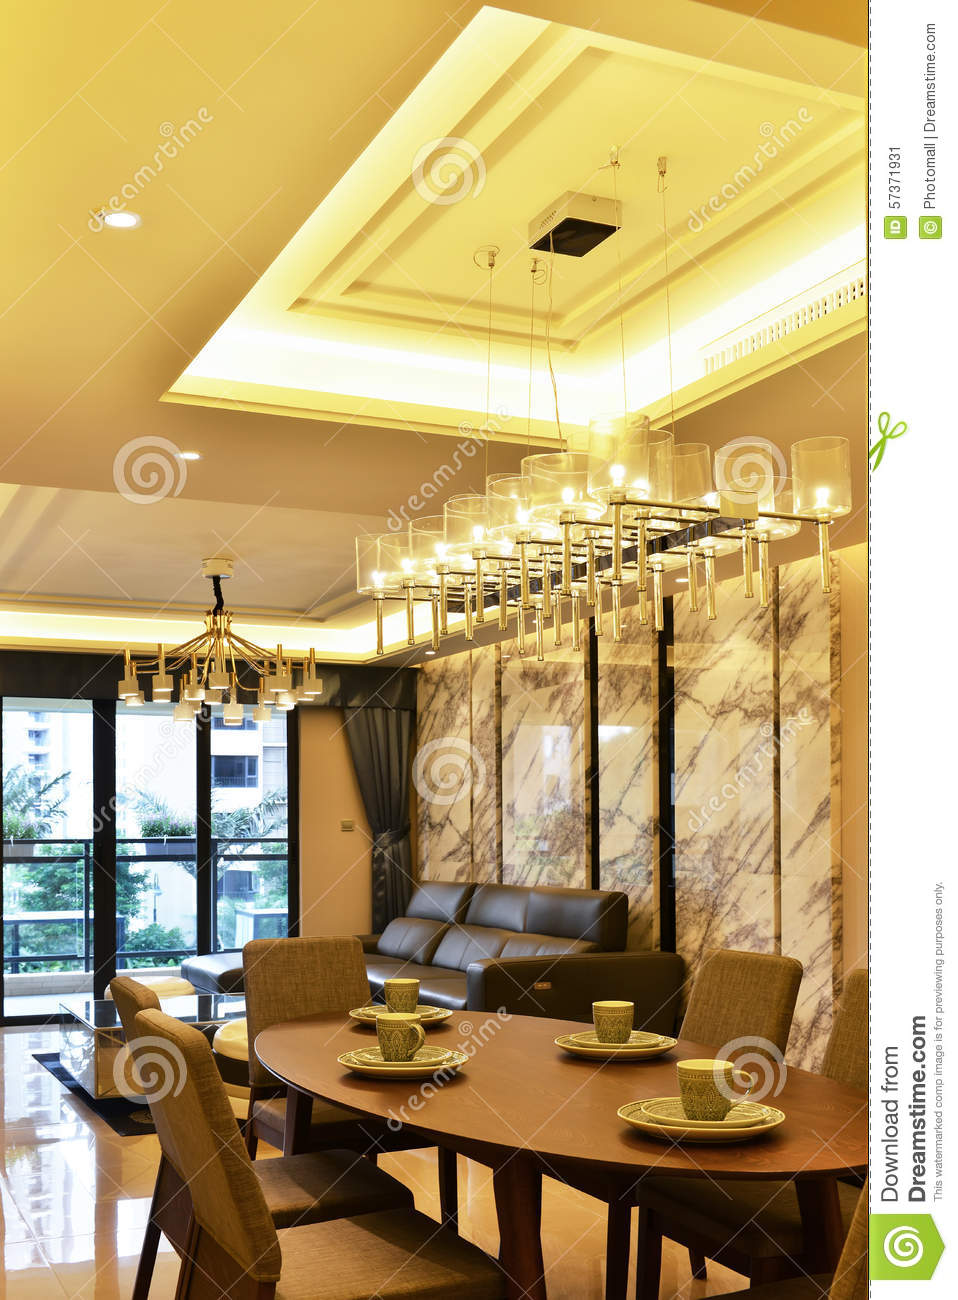 Dining Room And Living Room Stock Image Image of  : dining room living room crystal pendant lighting wood table four wooden chairs marble wall floor luxury villa hall 57371931 from www.dreamstime.com size 958 x 1300 jpeg 179kB